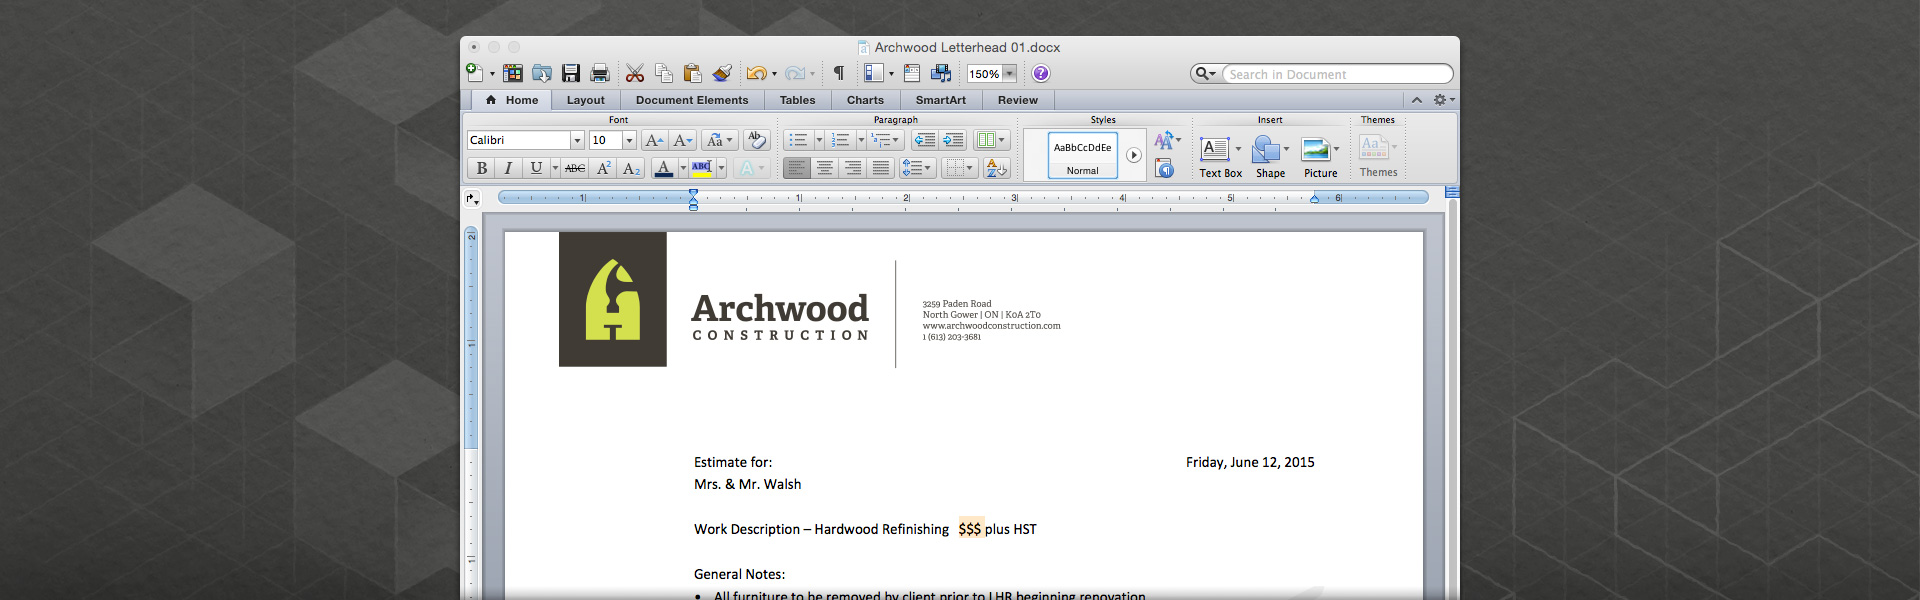 Screen shot of the Archwood Construction MS Word letterhead template.